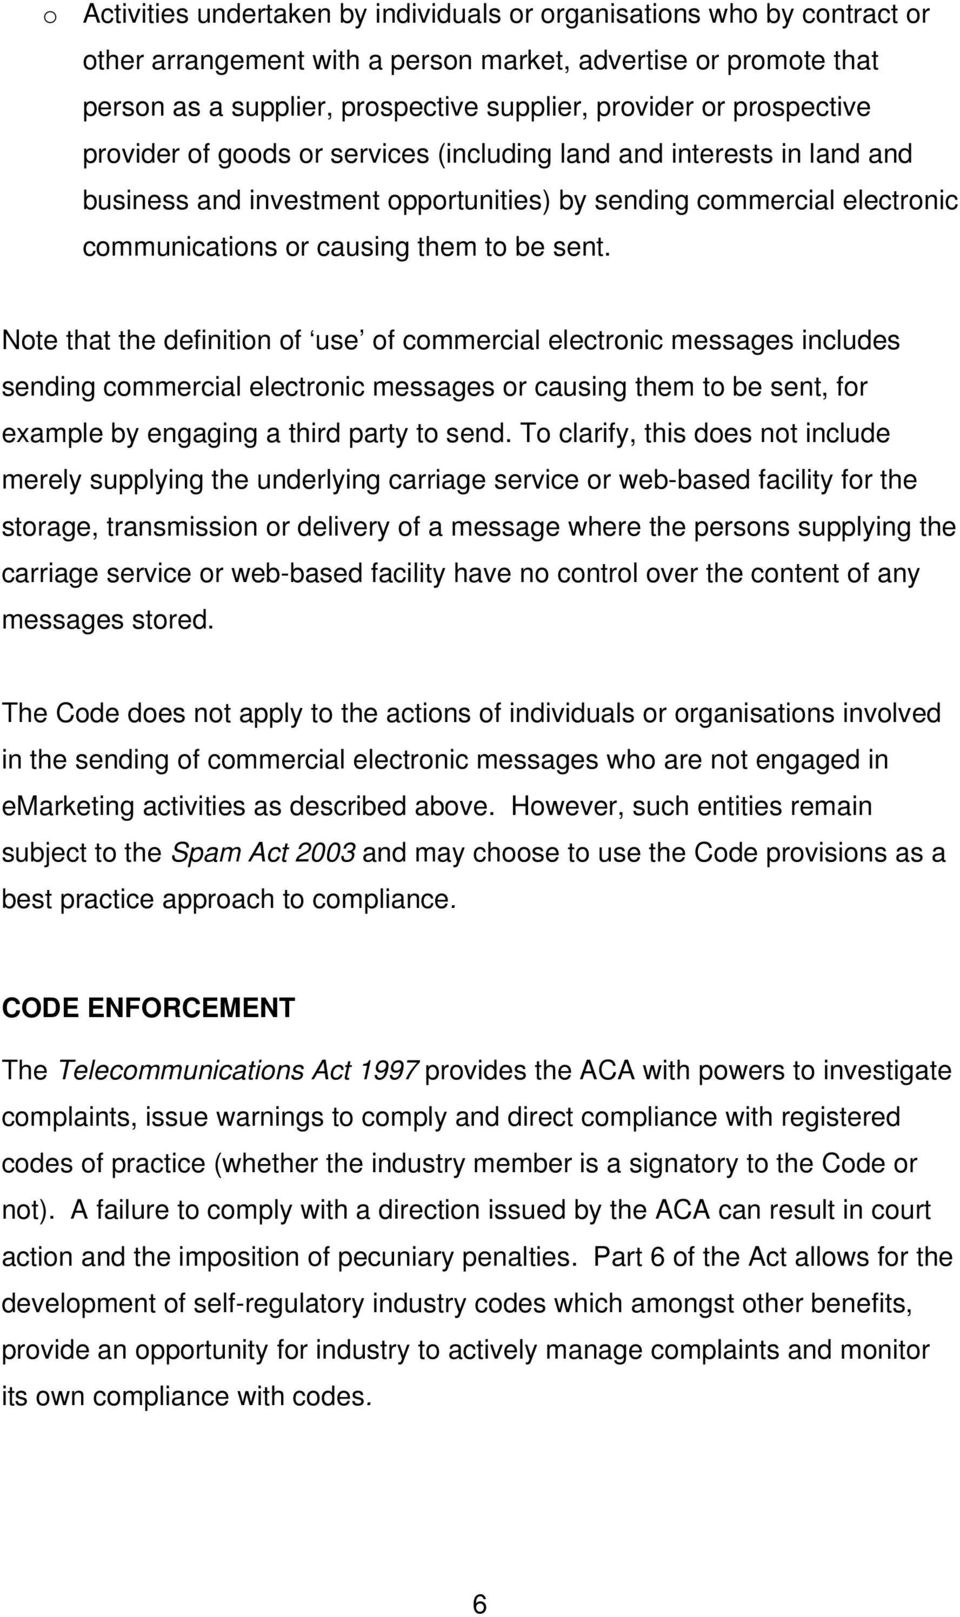 Note that the definition of use of commercial electronic messages includes sending commercial electronic messages or causing them to be sent, for example by engaging a third party to send.